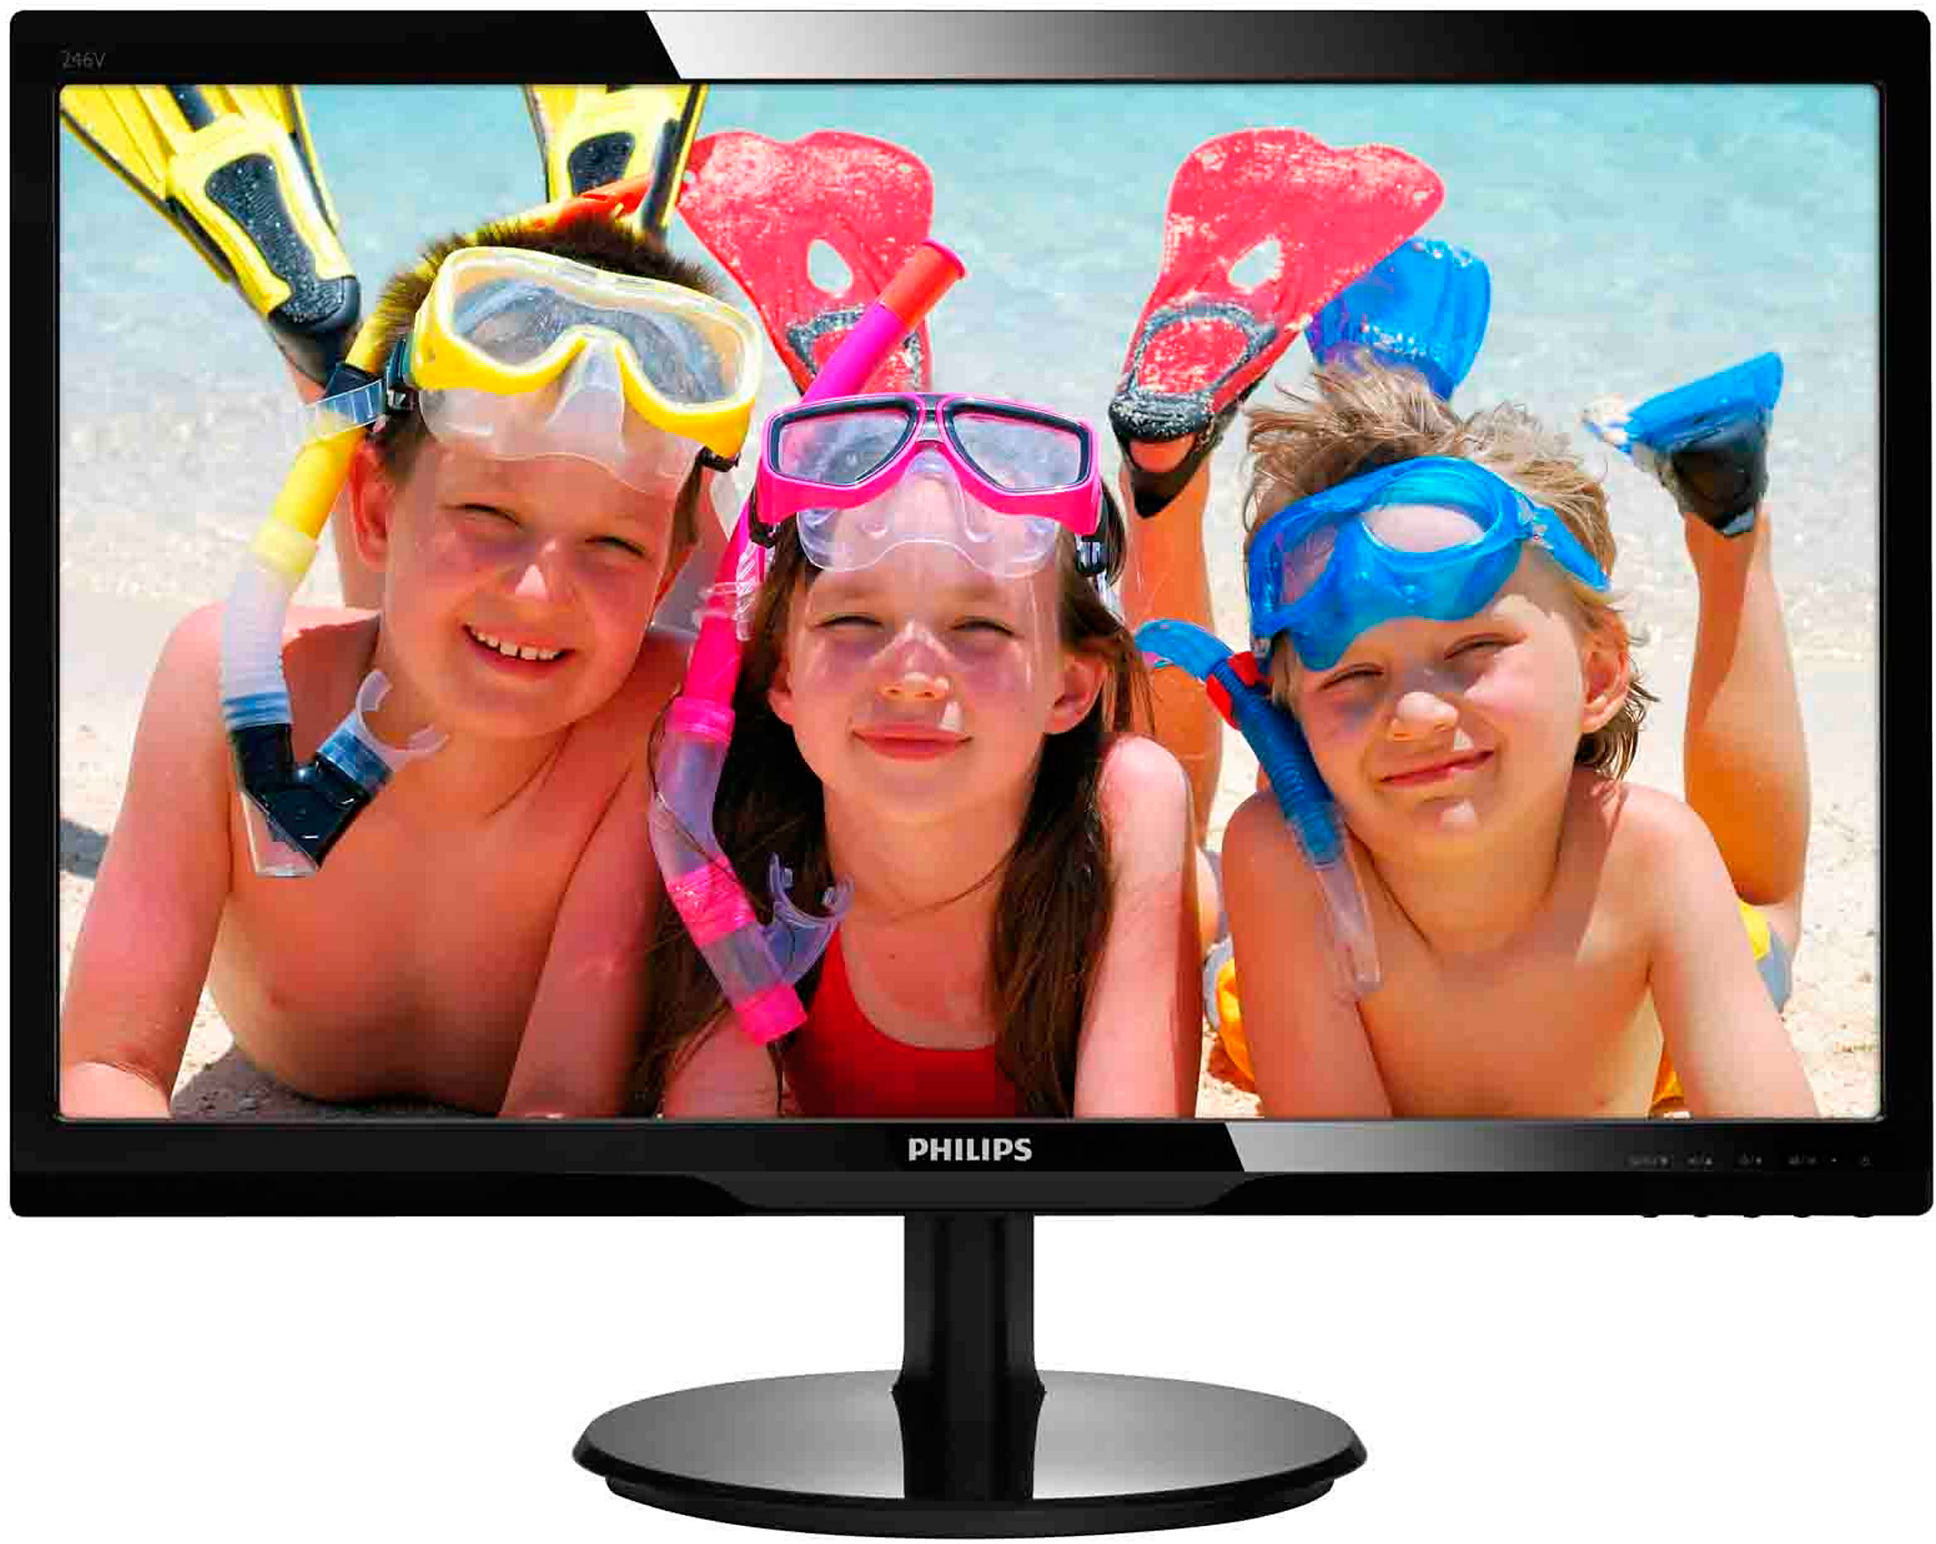 "Philips LCD 246V5LHAB 24""wide/1920x1080/5ms/10mil:1/HDMI/LED/repro"